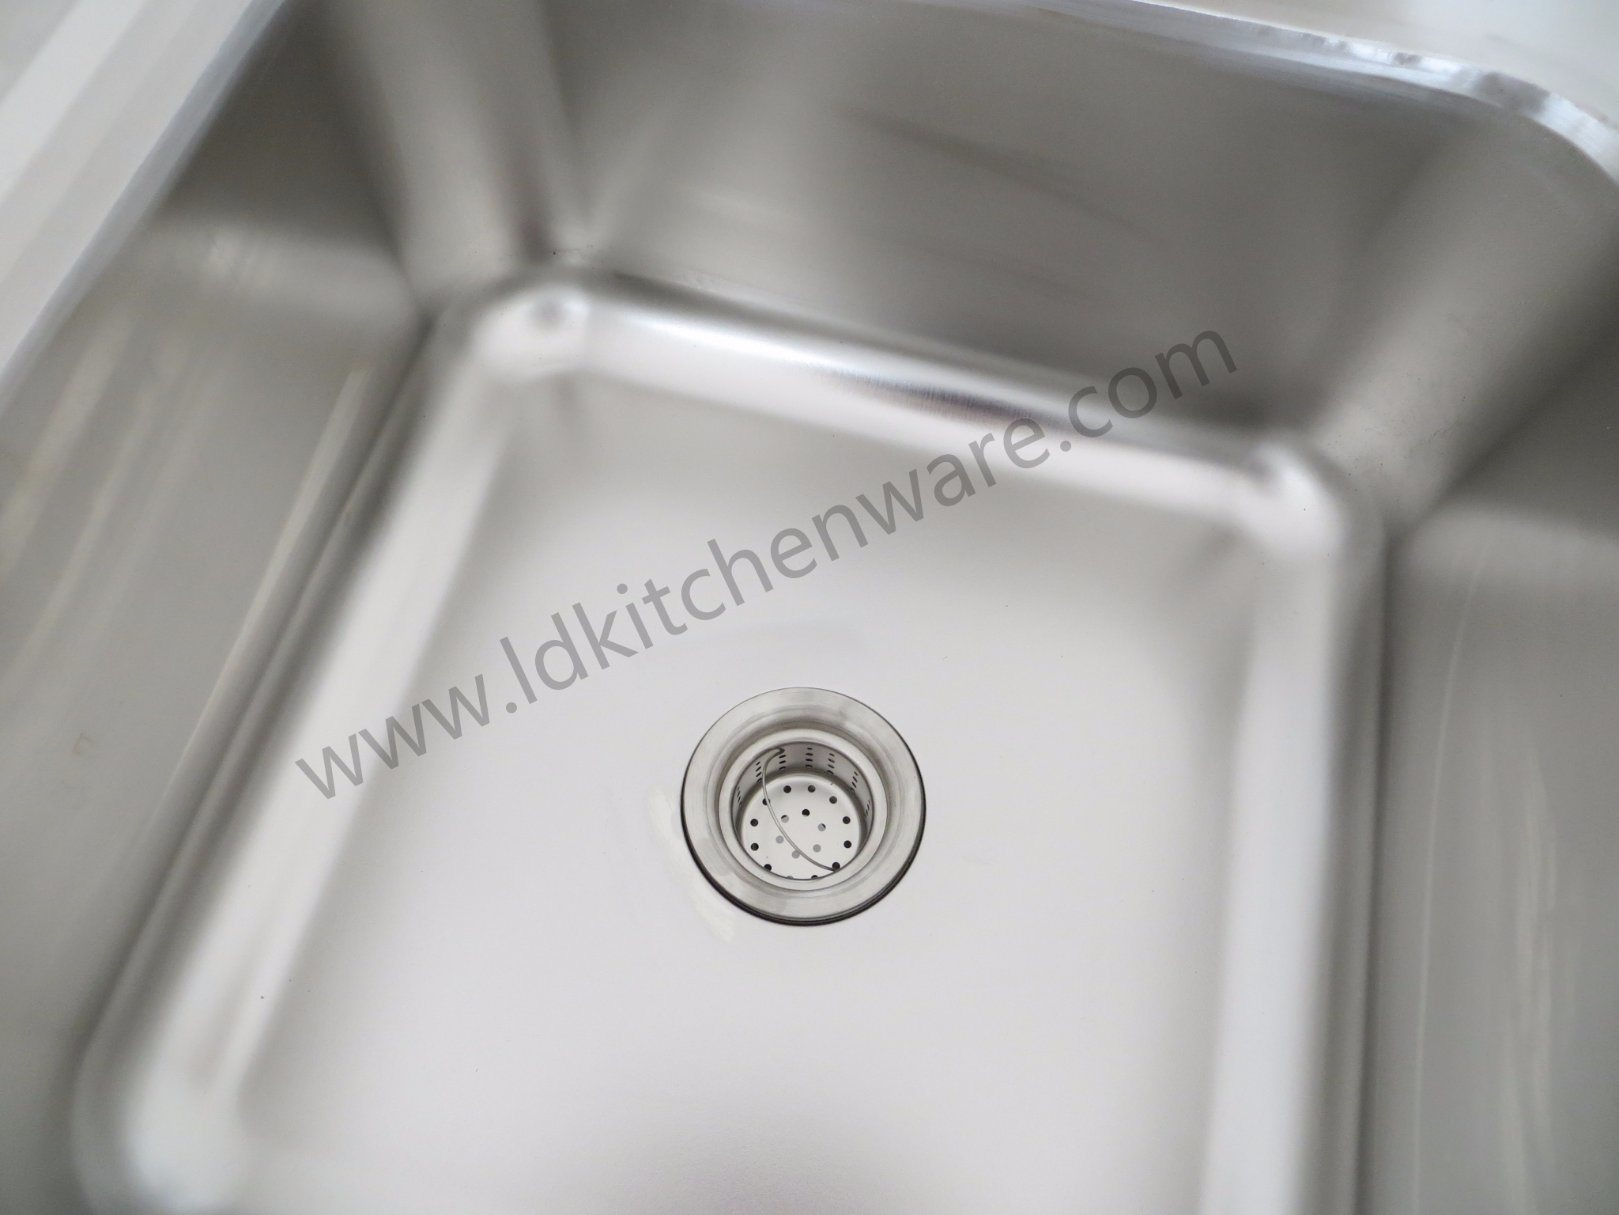 Stainless Industrial Sink Unit with Three Compartments